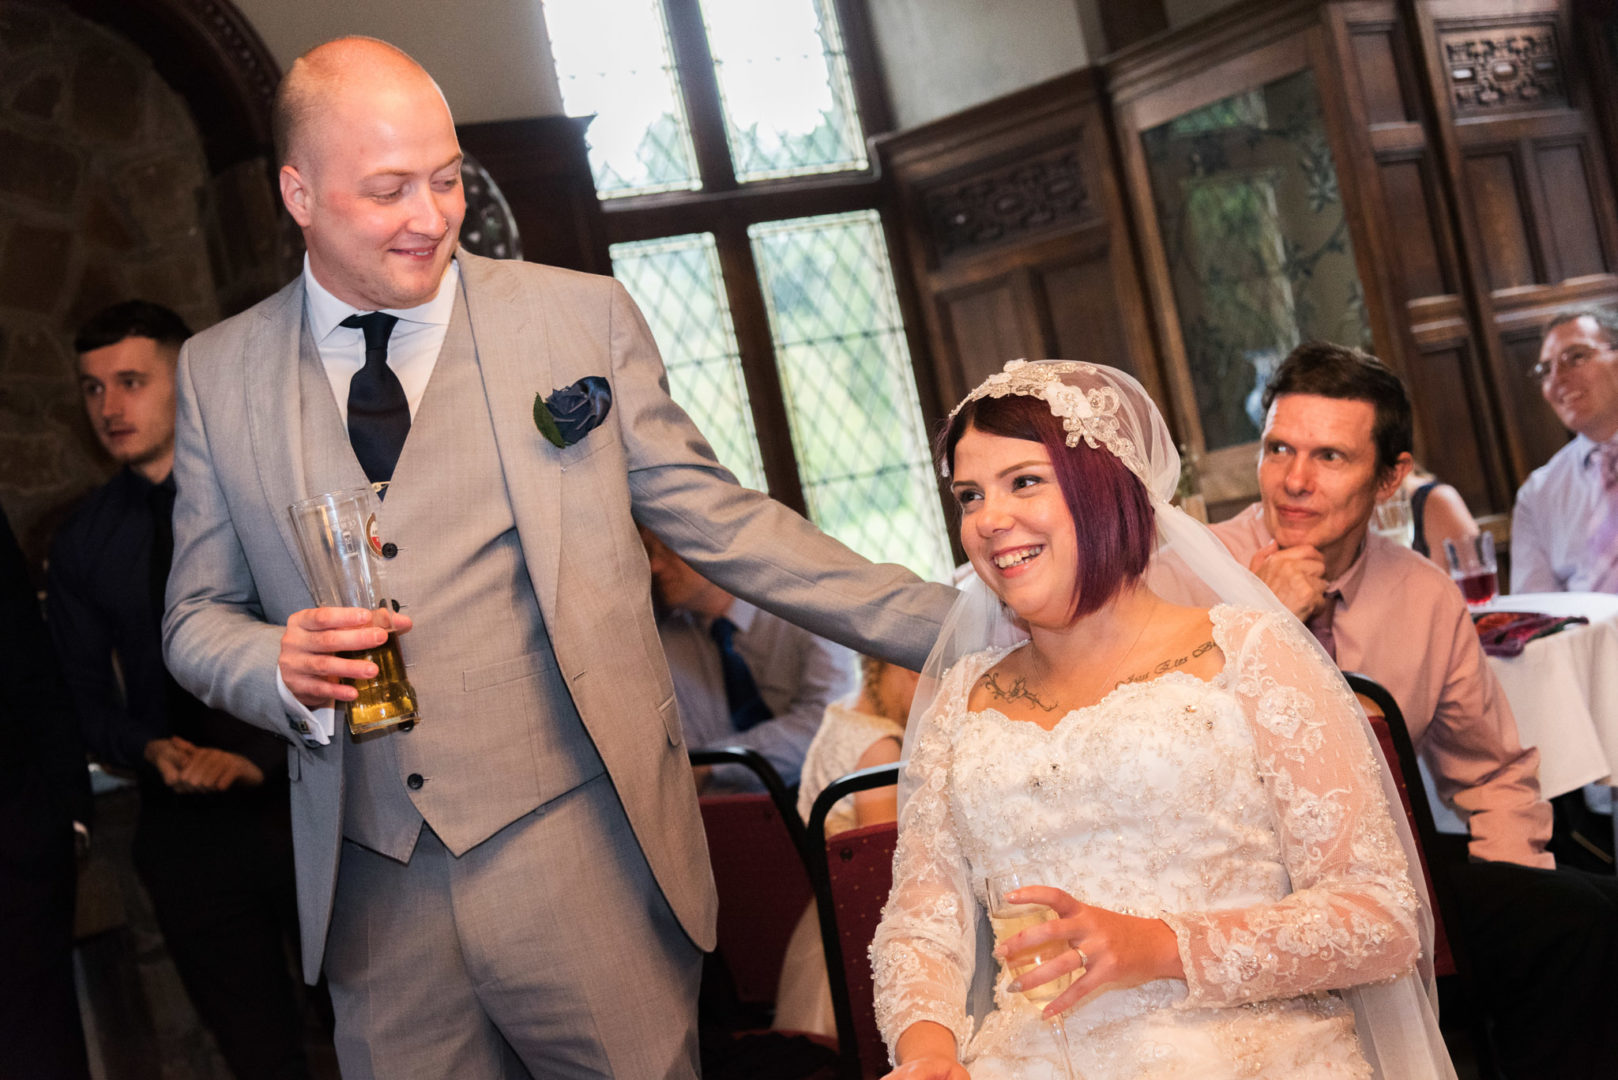 Nuneaton wedding photographer AJTImages at Rothley Court